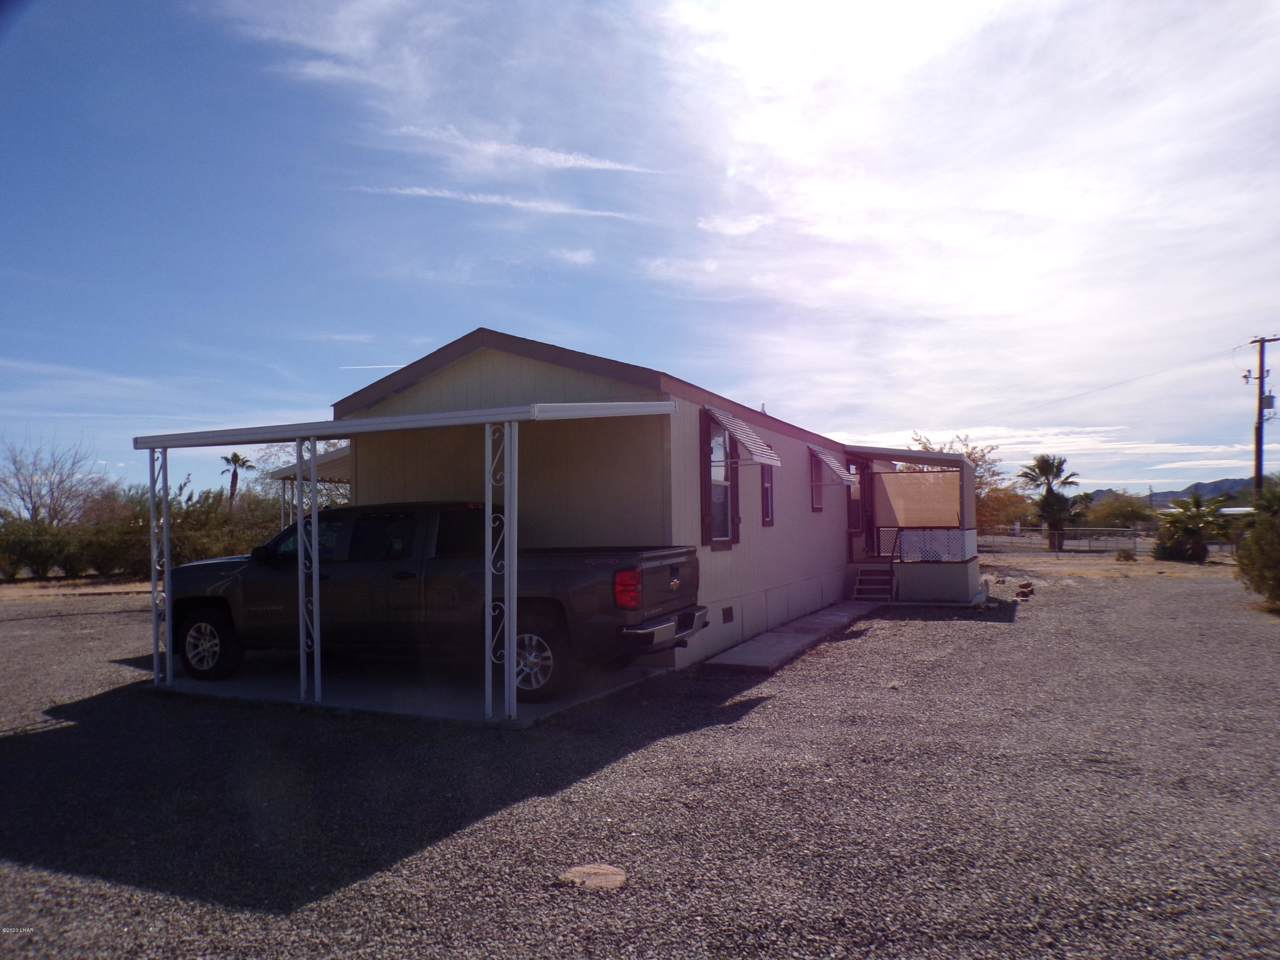 https://bt-photos.global.ssl.fastly.net/lakehavasu/1280_boomver_2_1009666-2.jpg